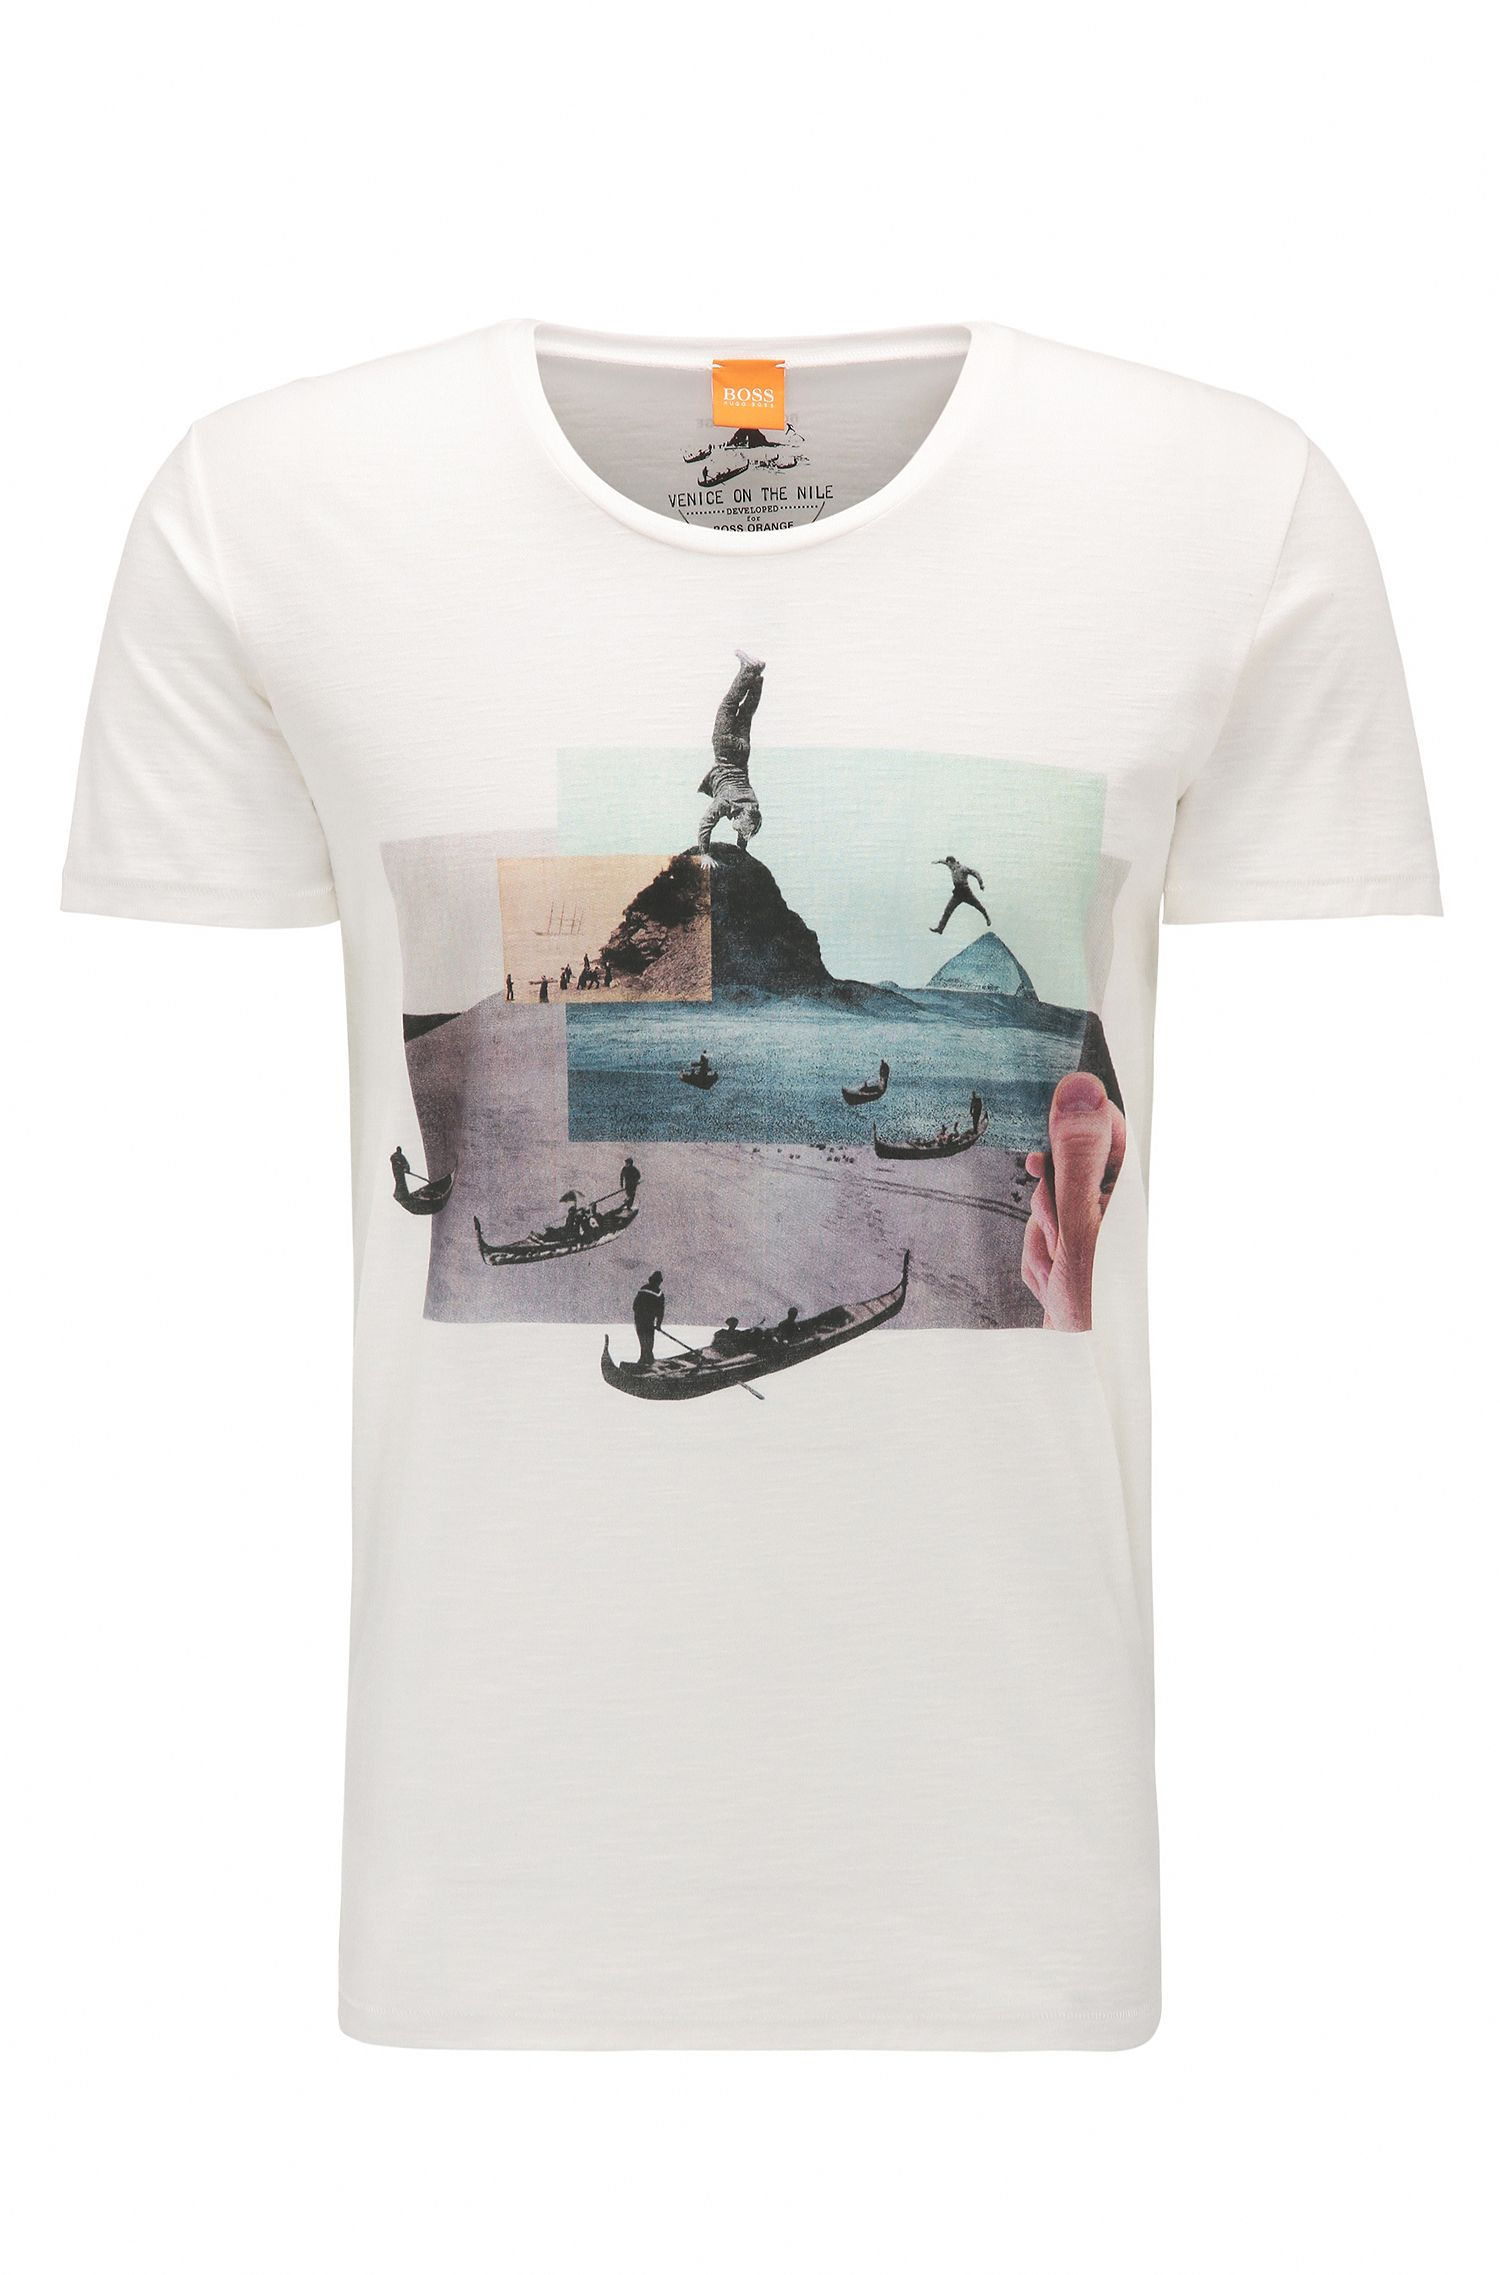 Cotton Jersey Graphic T-Shirt | Thoughts